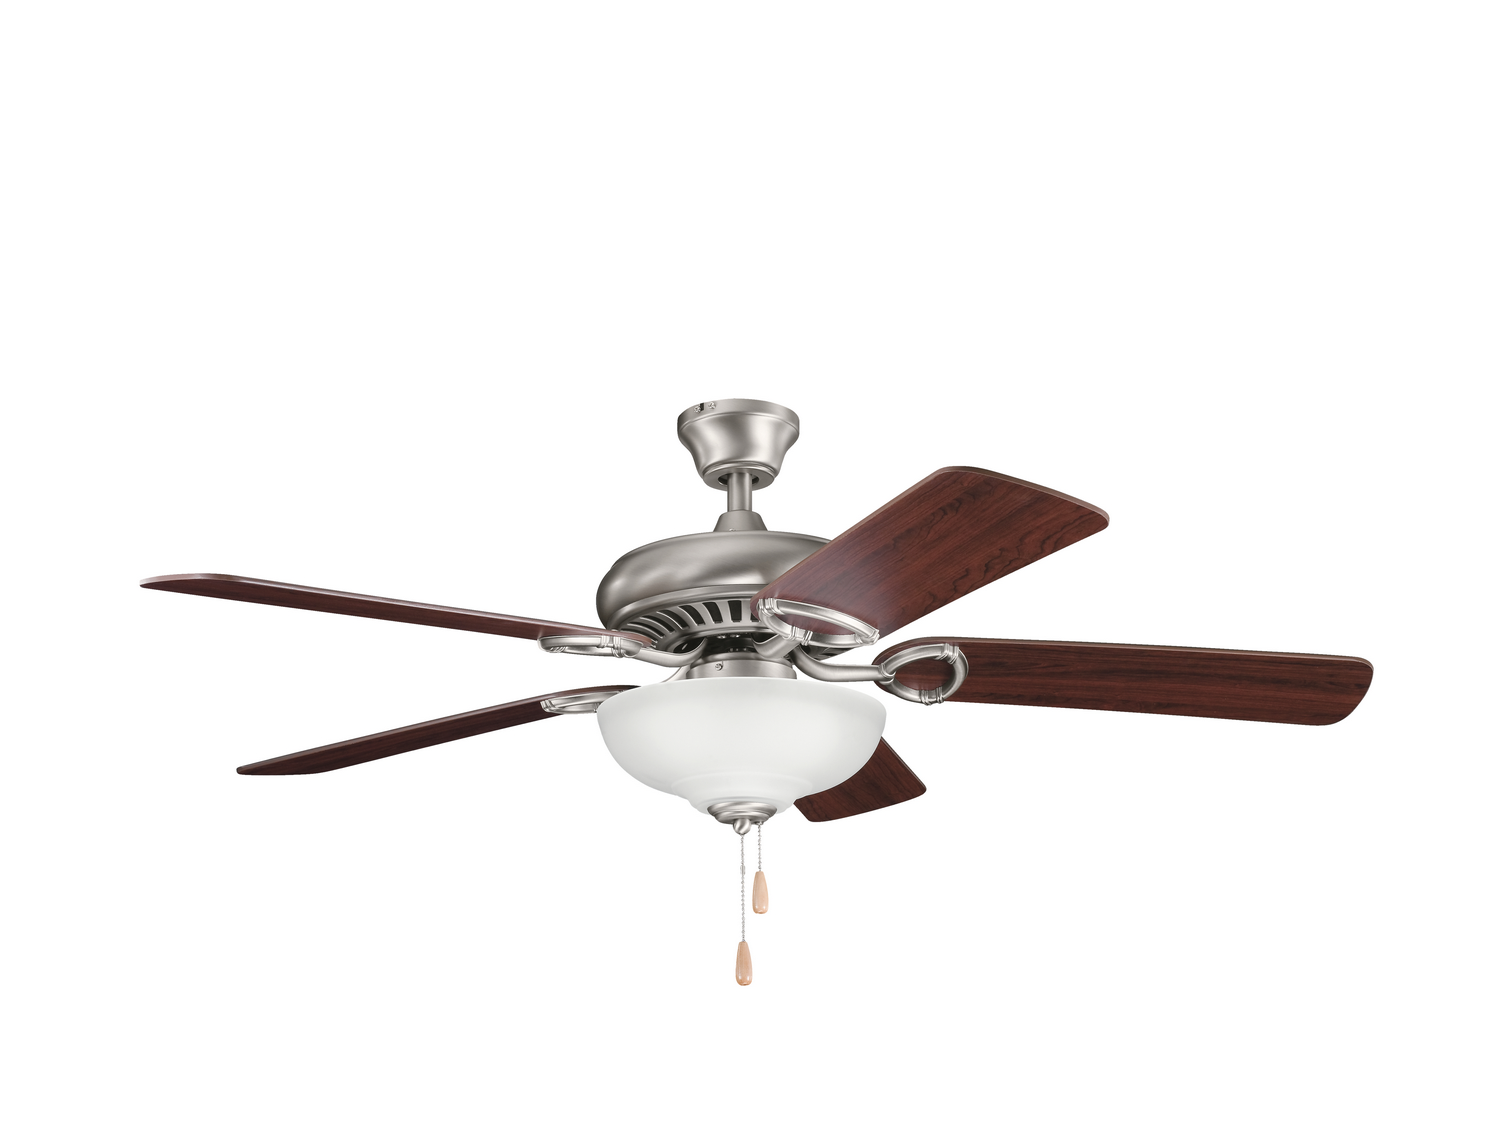 52 inchCeiling Fan from the Sutter Place Select collection by Kichler 339211AP